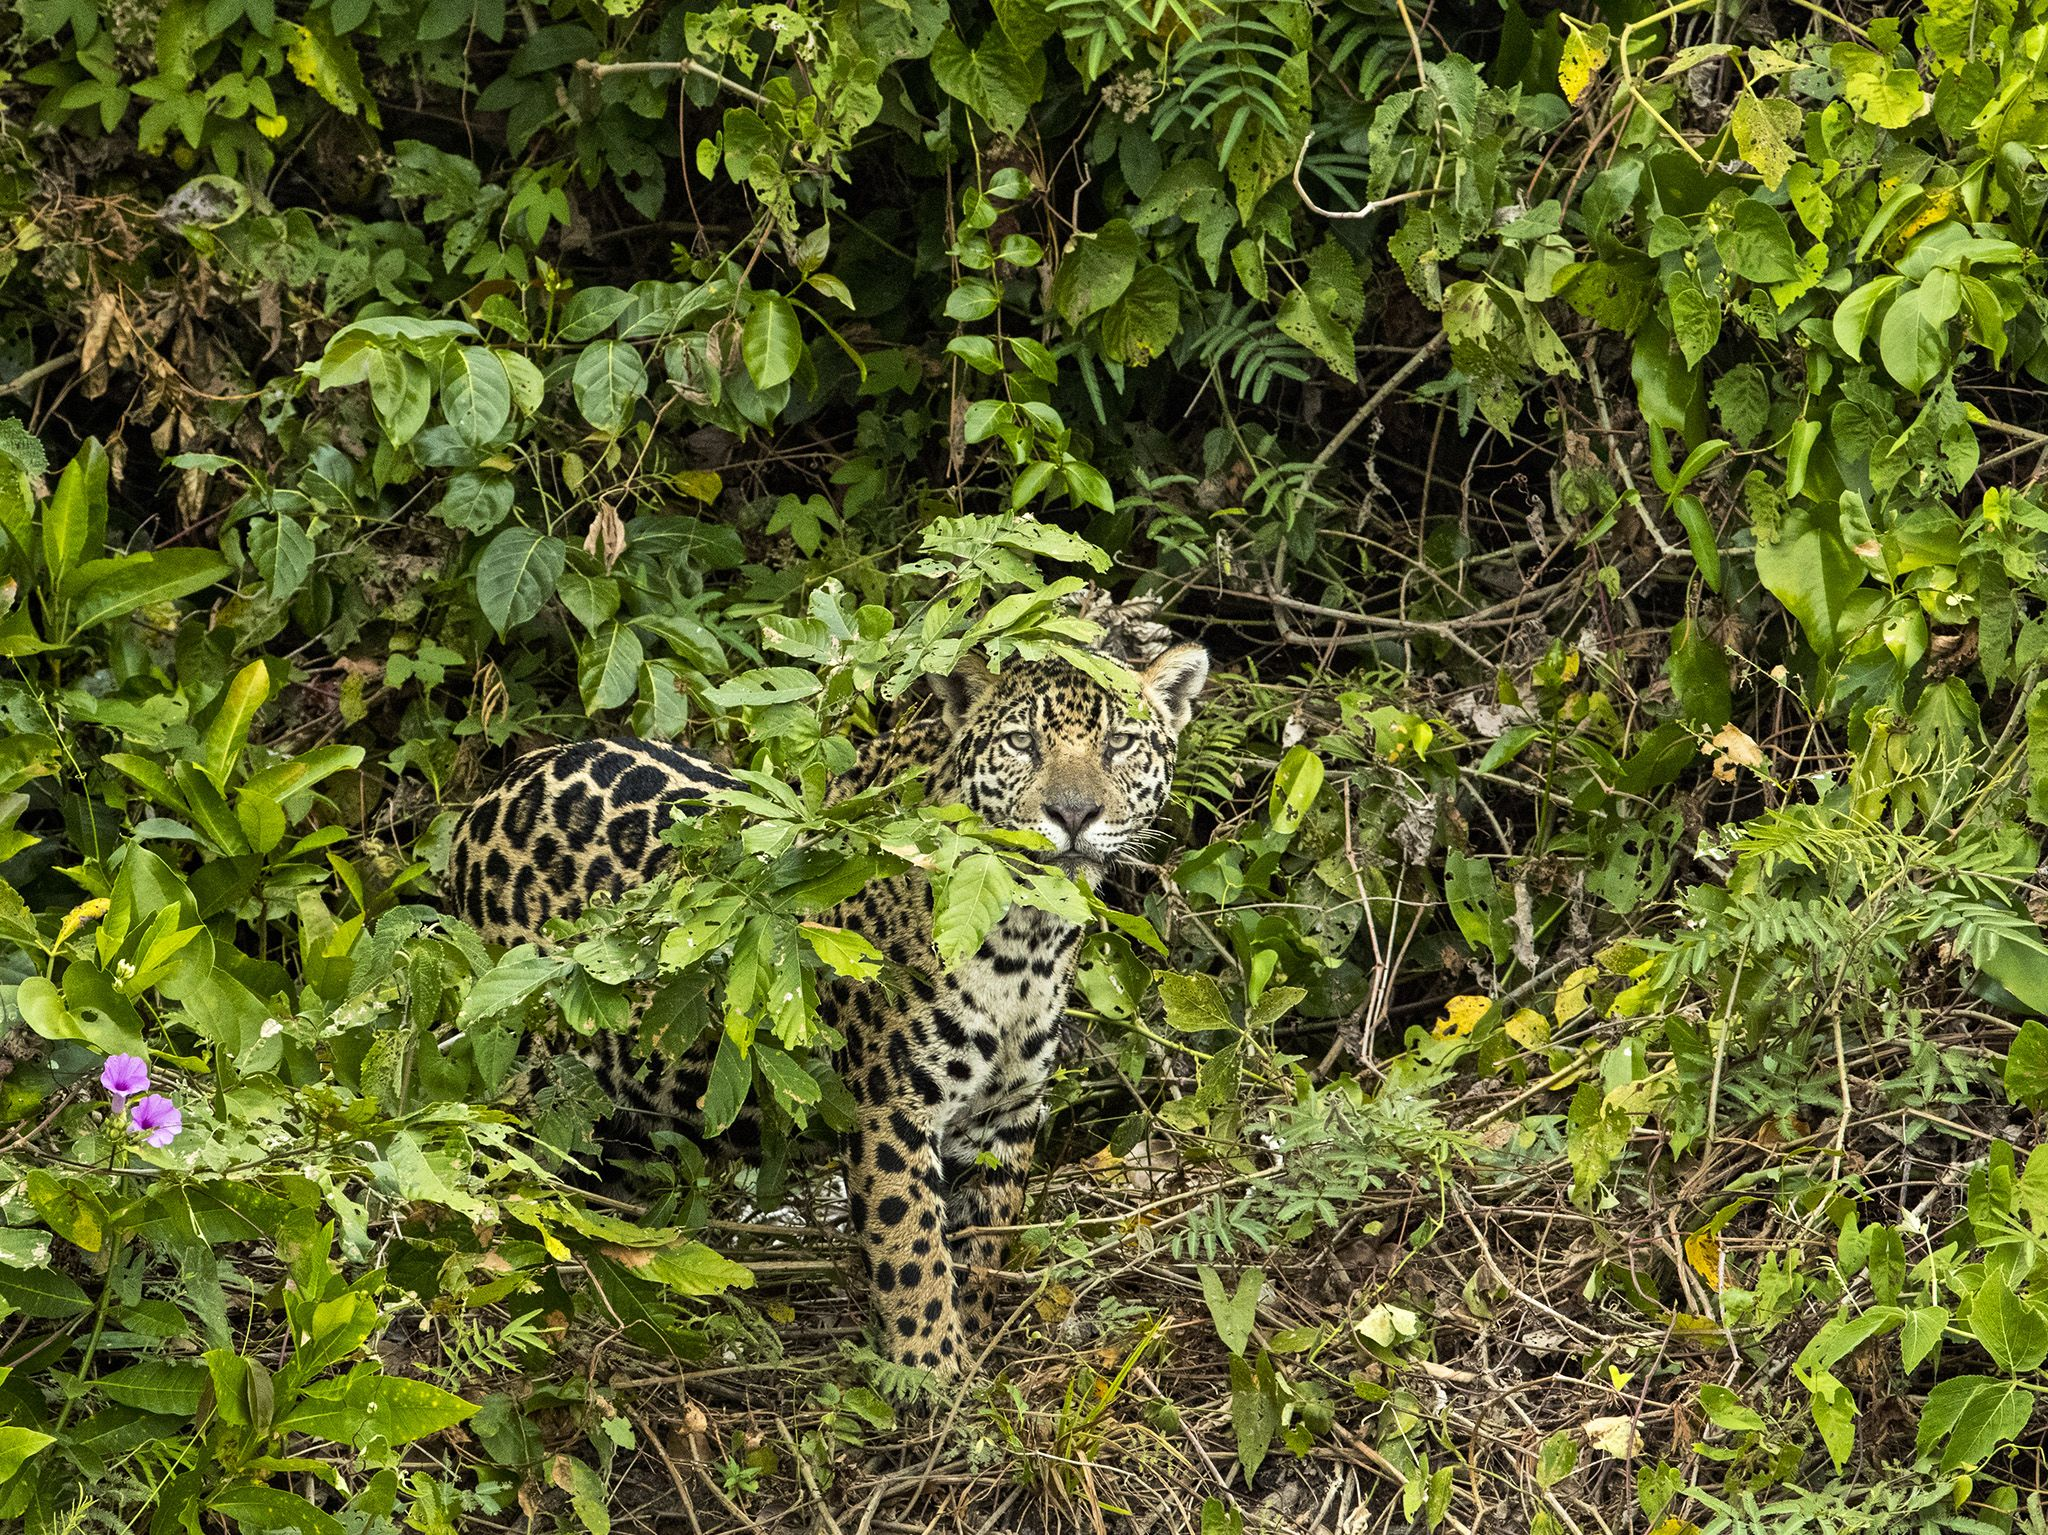 Pantanal, Brazil:  Jaguar in the bushes. This image is from Jaguar vs. Croc. [Photo of the day - January 2018]